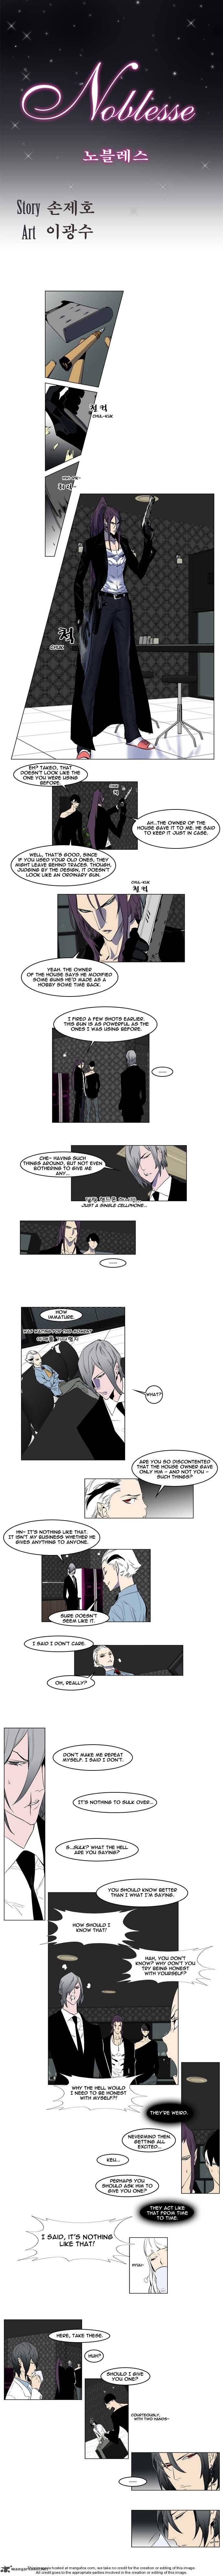 Noblesse Chapter 146 Page 1